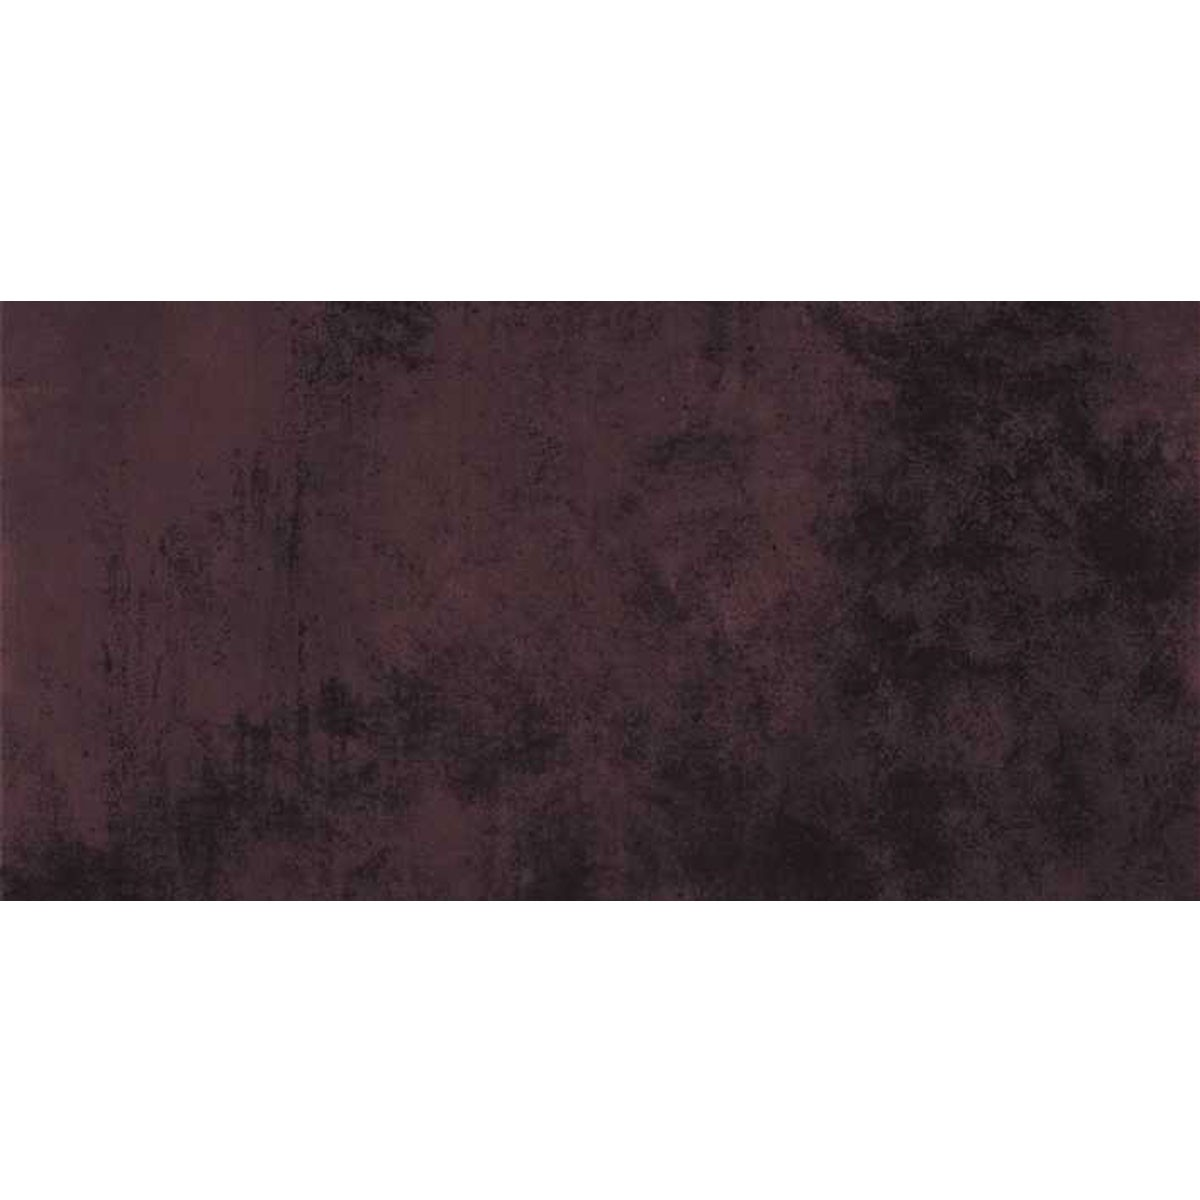 24 x 12 In. Brown Porcelain Floor Tile - 8 Pcs/Case (15.50 sq.ft/Case) (UR60E)